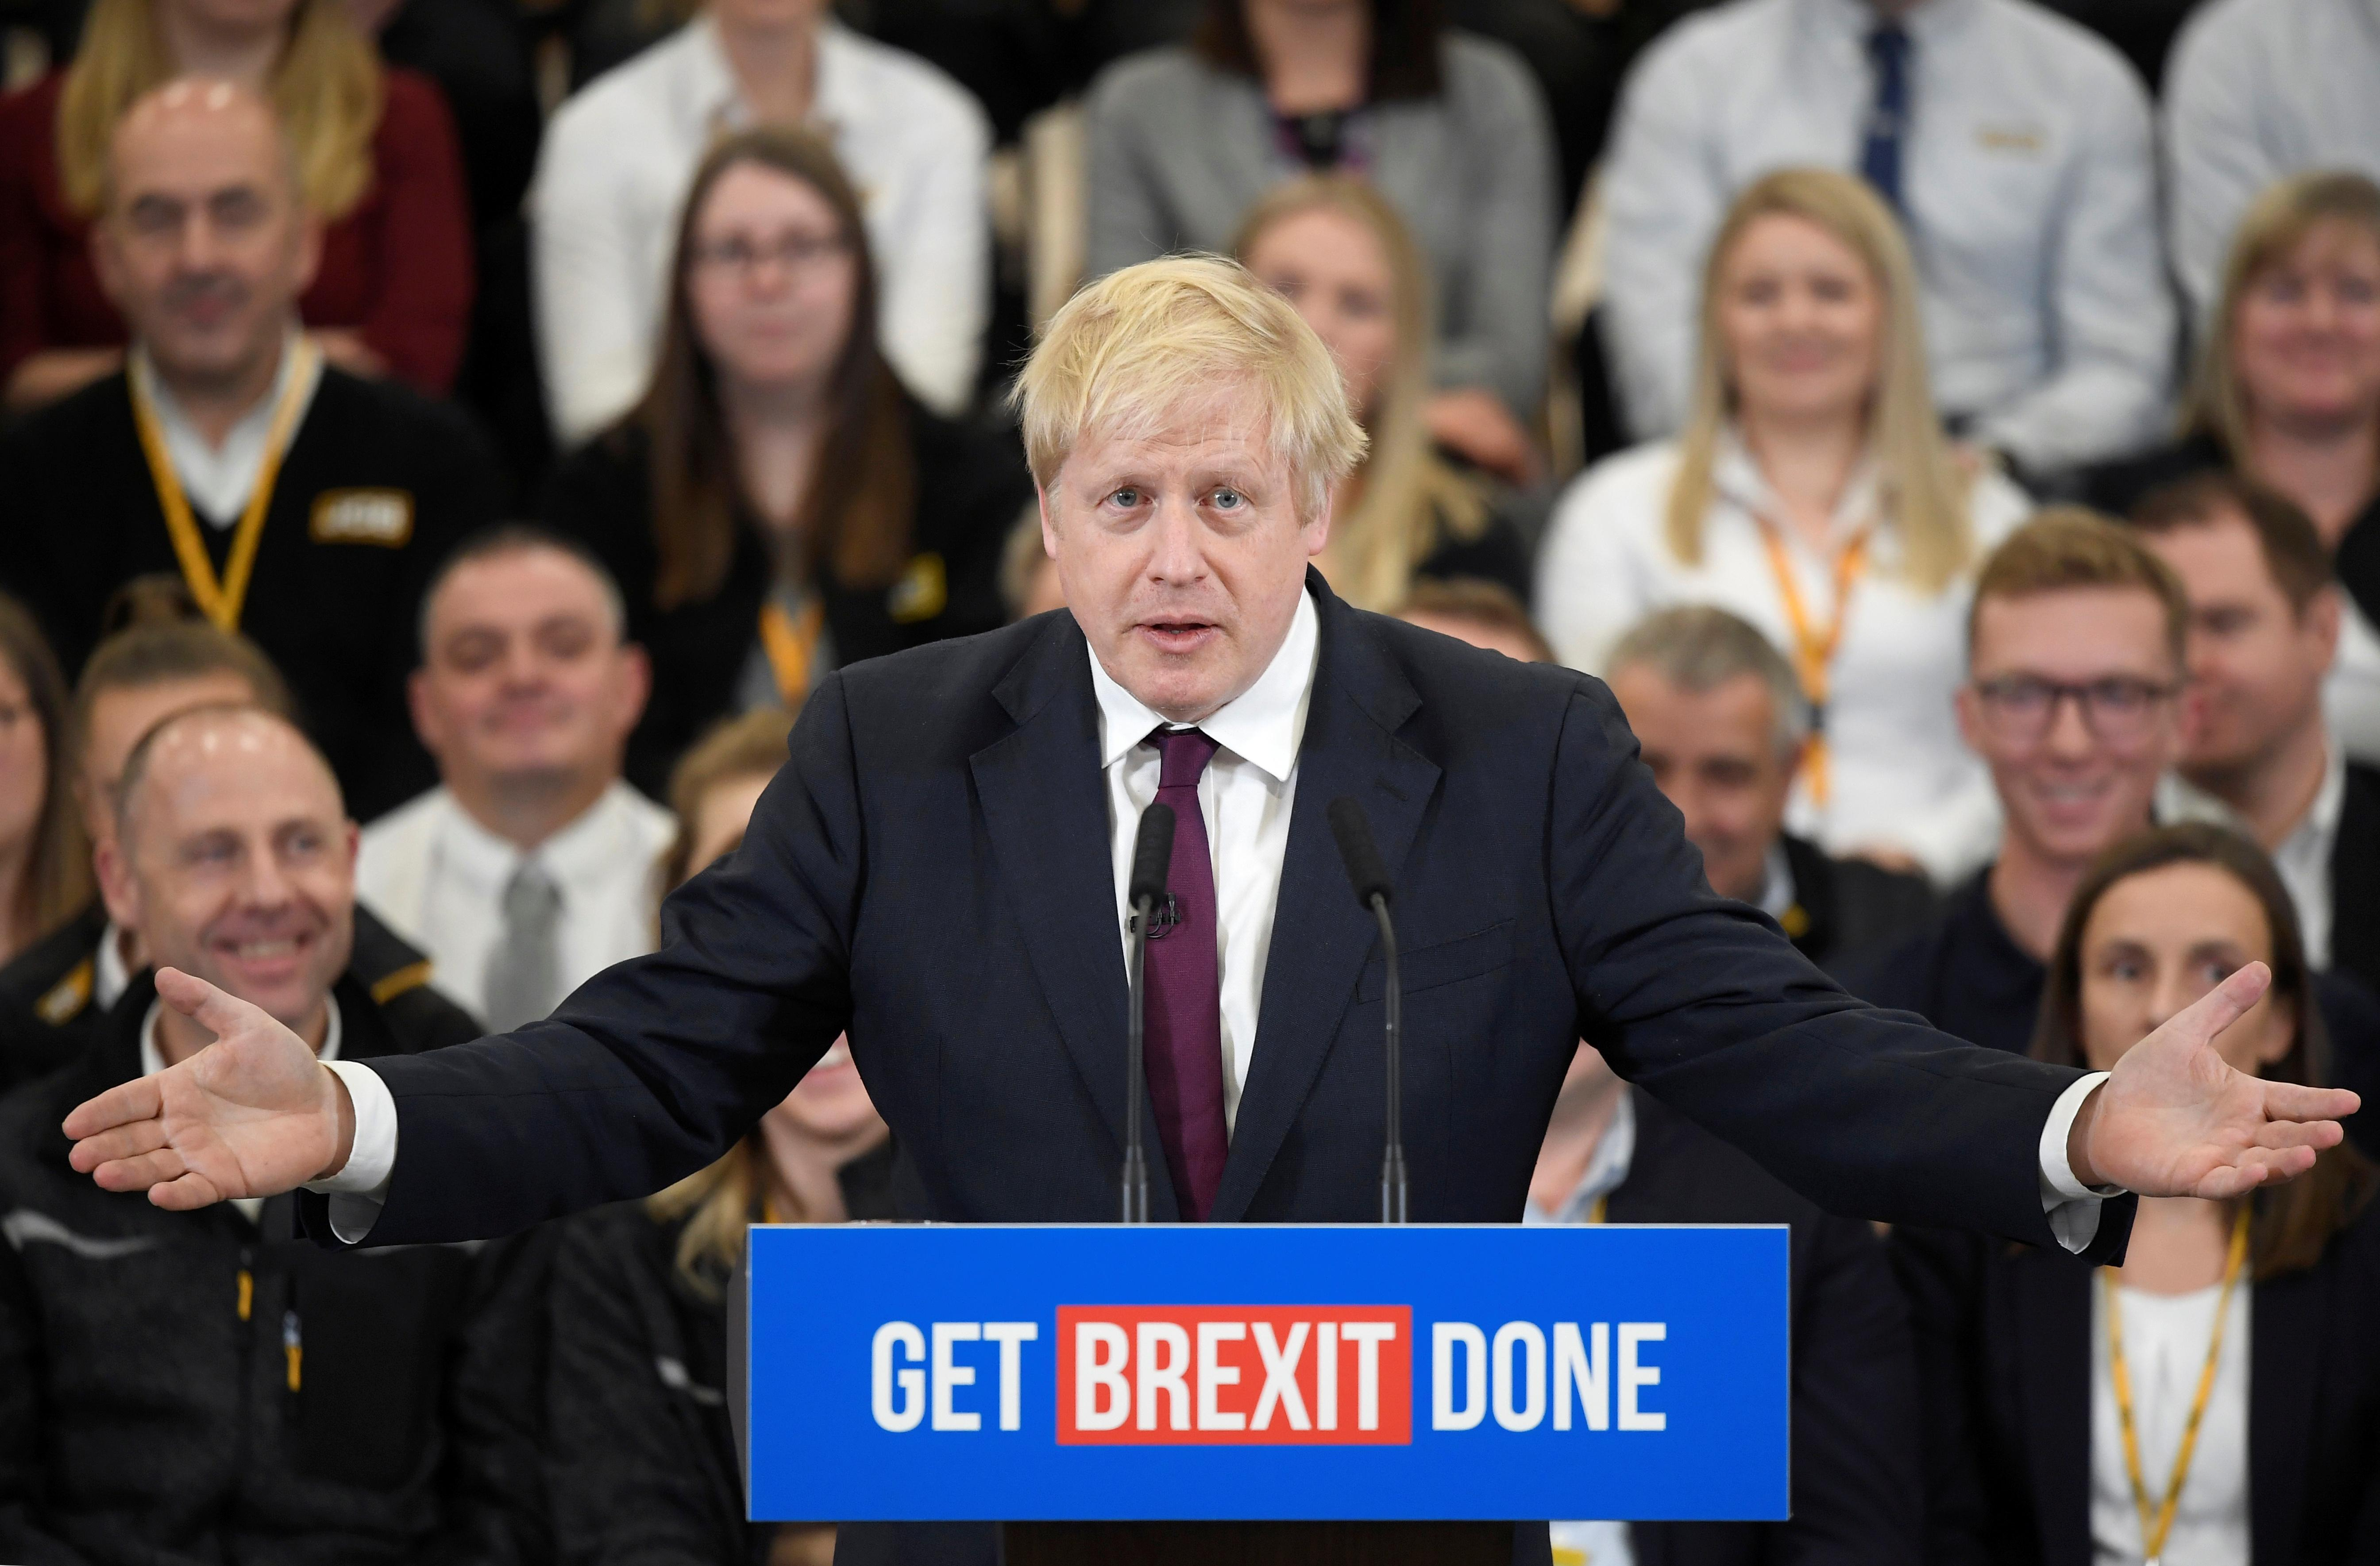 We can rip up the EU rule book, Johnson tells UK voters